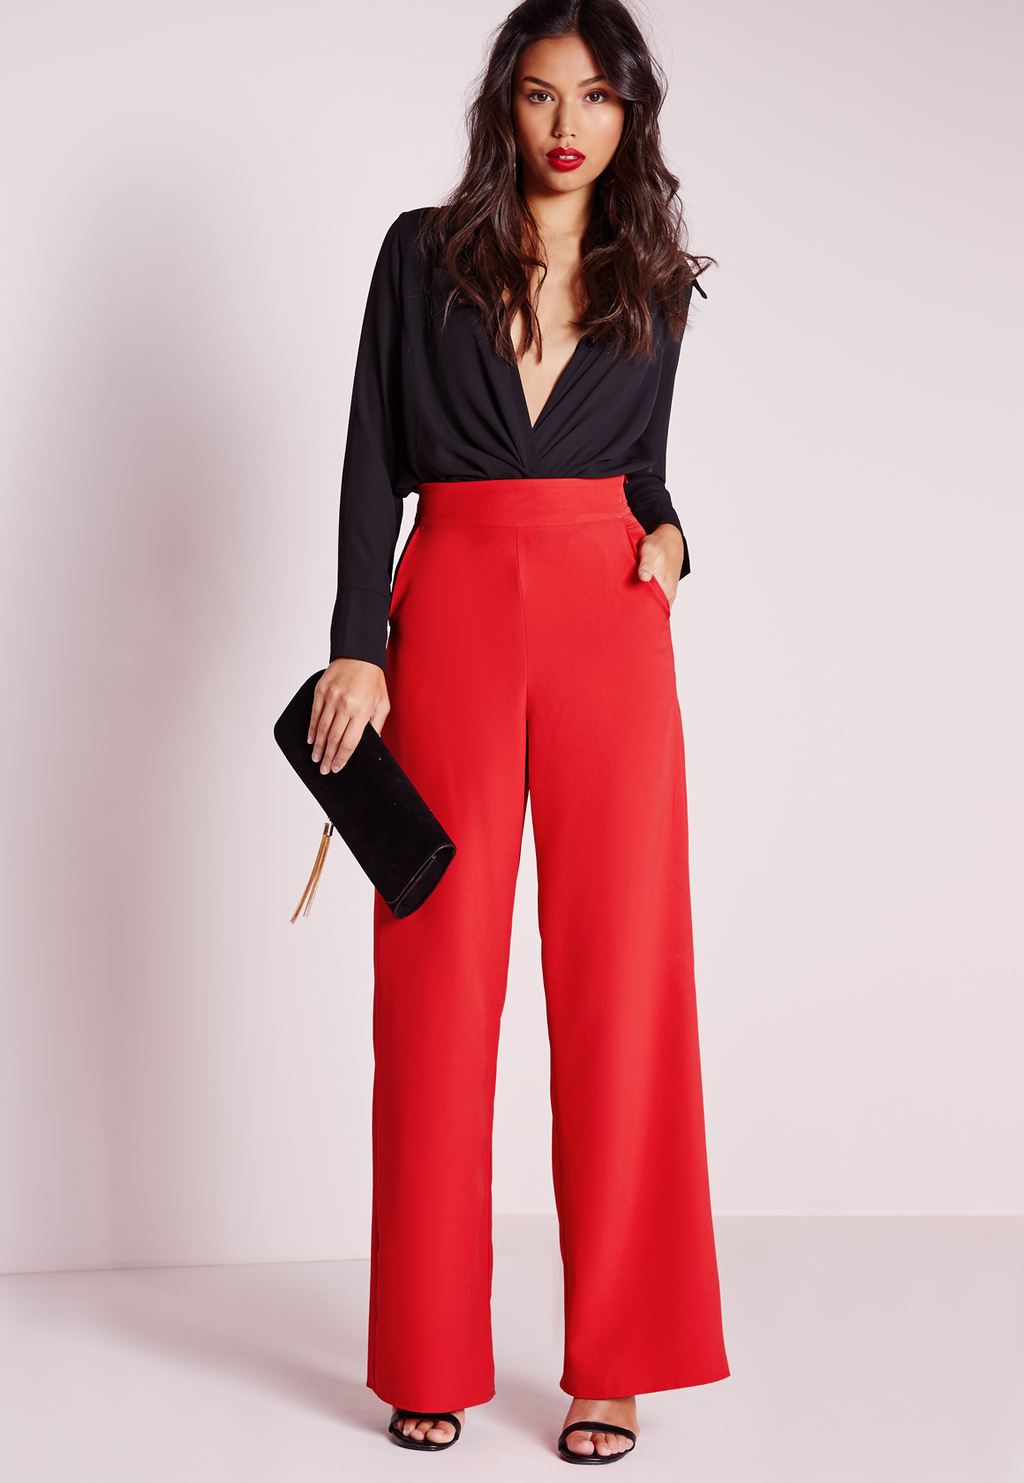 High Waist Wide Leg Trousers Red, Red - length: standard; pattern: plain; waist: high rise; predominant colour: true red; fibres: polyester/polyamide - 100%; occasions: occasion; fit: wide leg; pattern type: fabric; texture group: other - light to midweight; style: standard; season: s/s 2016